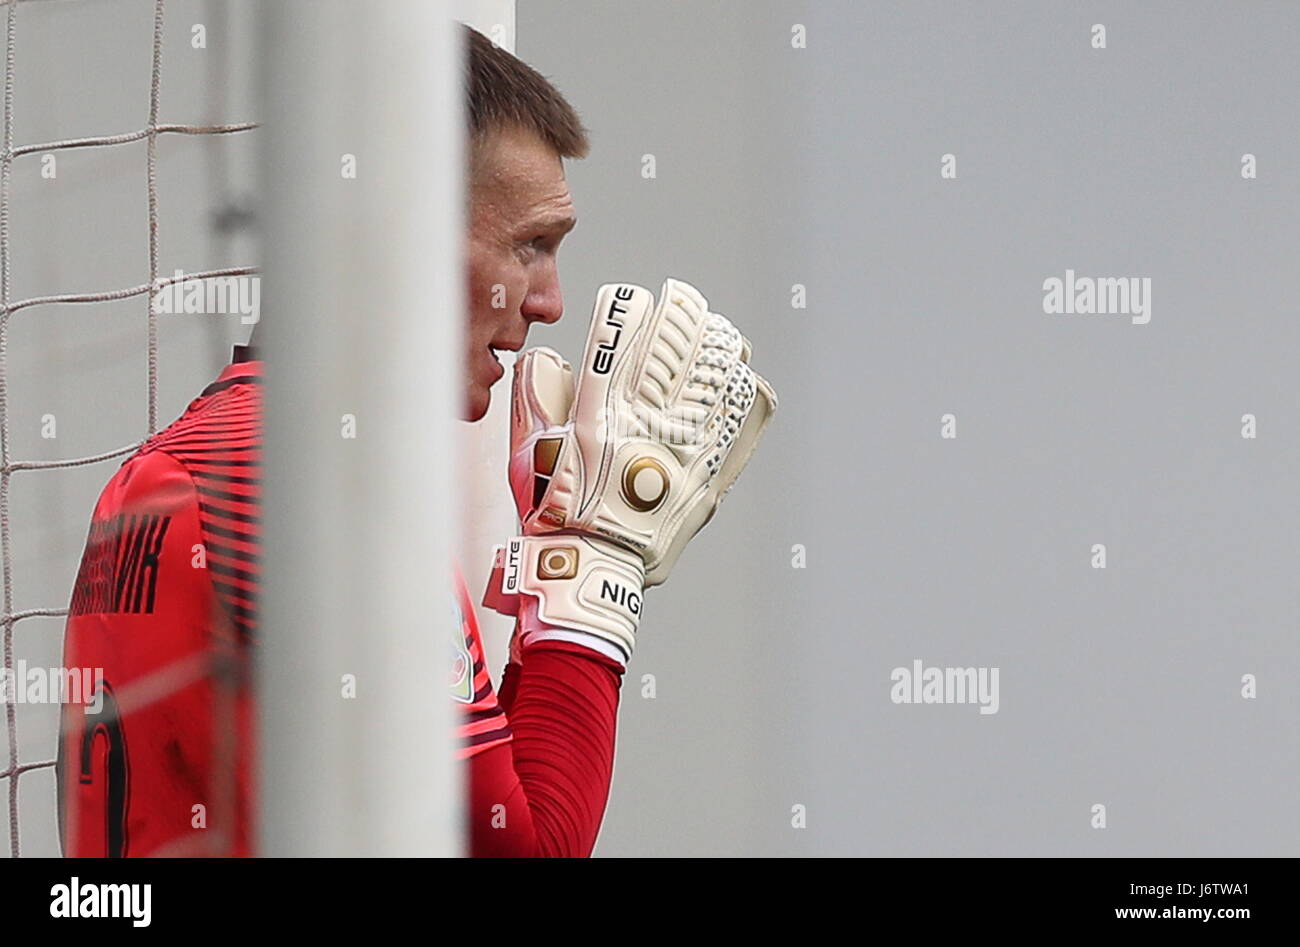 Moscow Region, Russia. 20th May, 2017. Tosno's goalkeeper Artur Nigmatullin in their 2016/2017 Russian Football - Stock Image